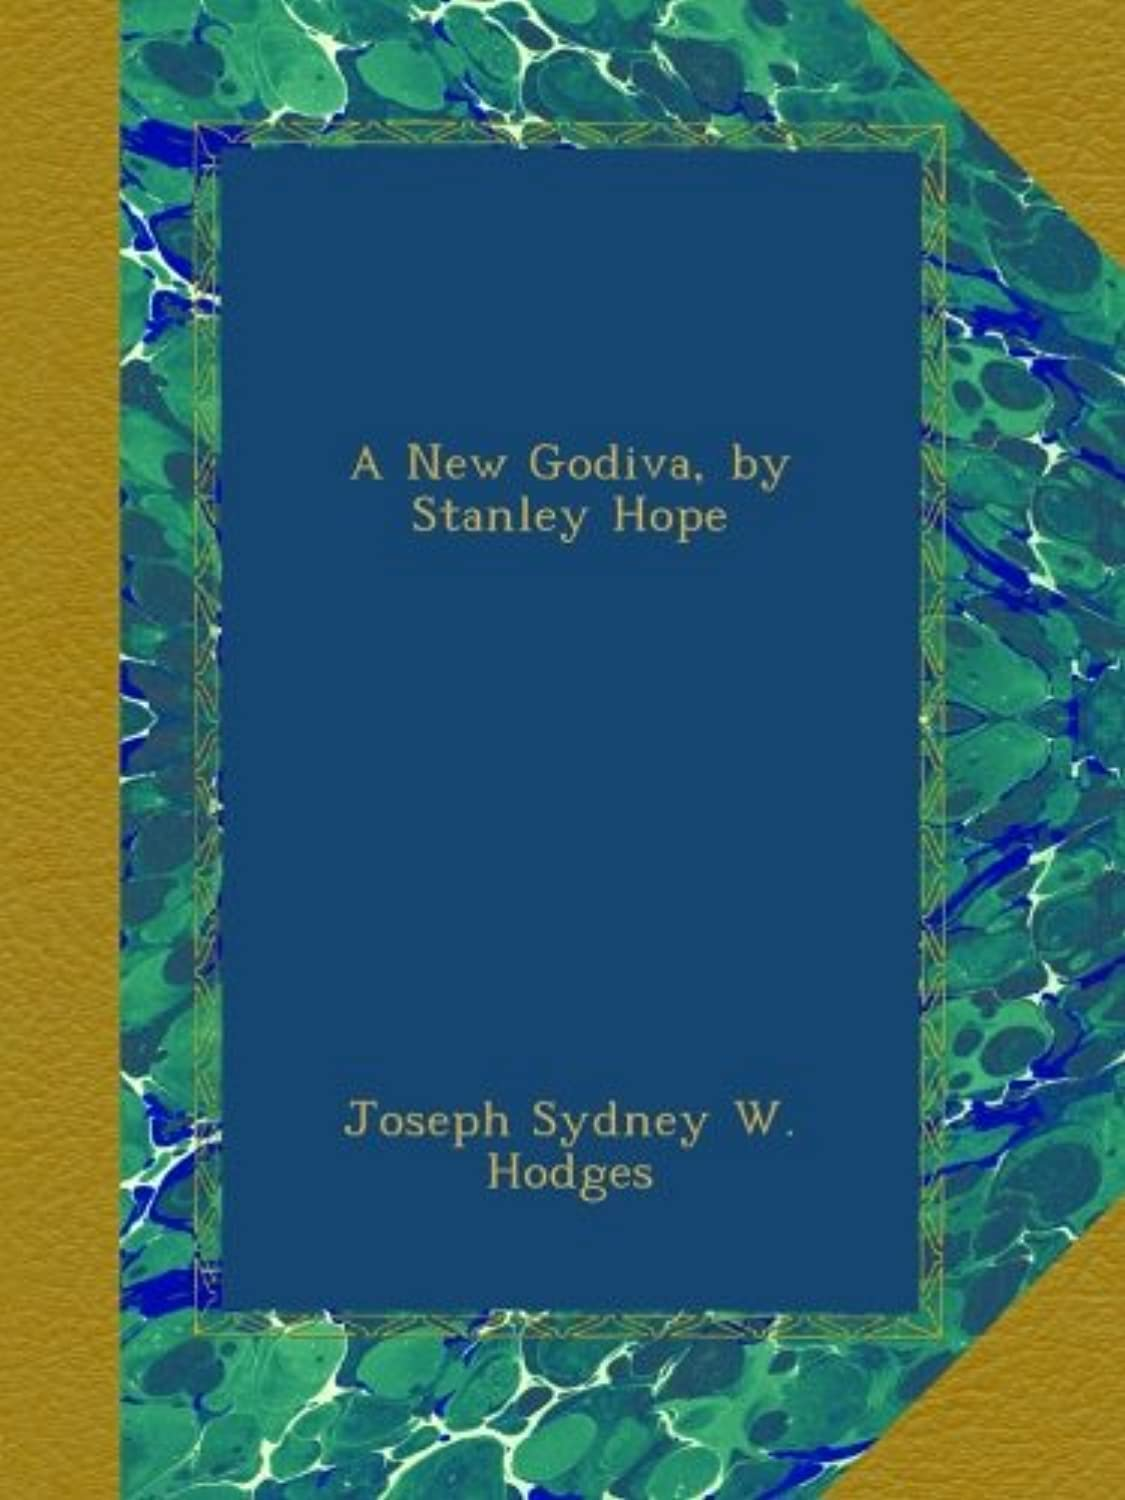 A New Godiva, by Stanley Hope